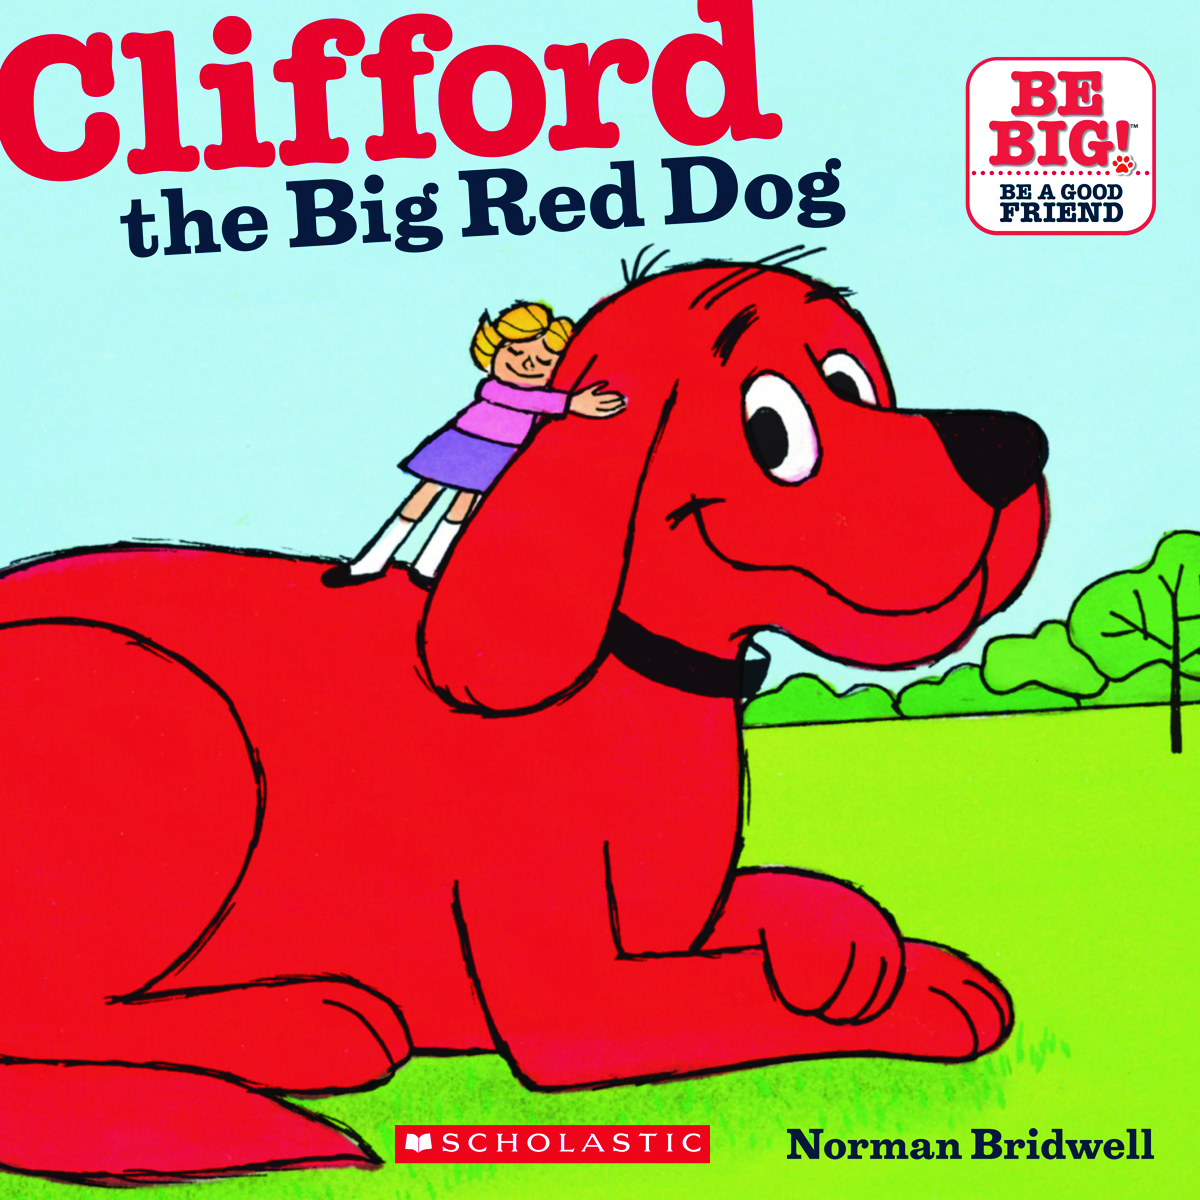 205d6a6690 My books read like Clifford the Big Red Dog. At least at first ...